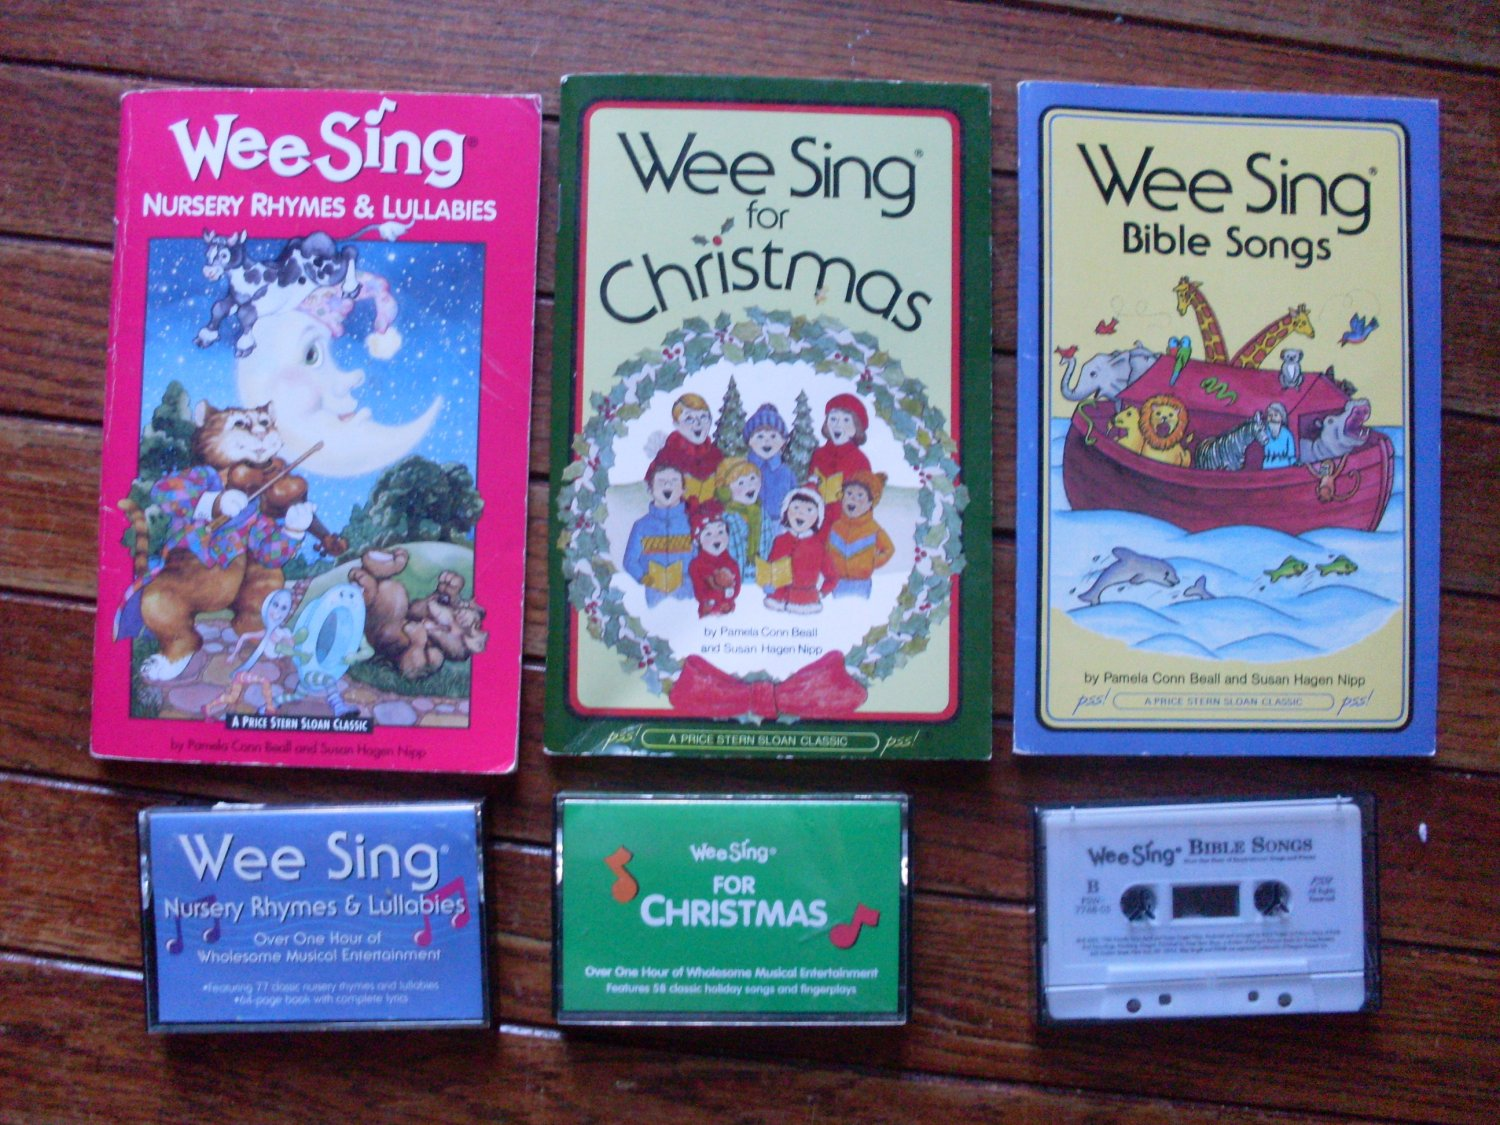 Lot 3 Wee Sing Books and music cassette tapes